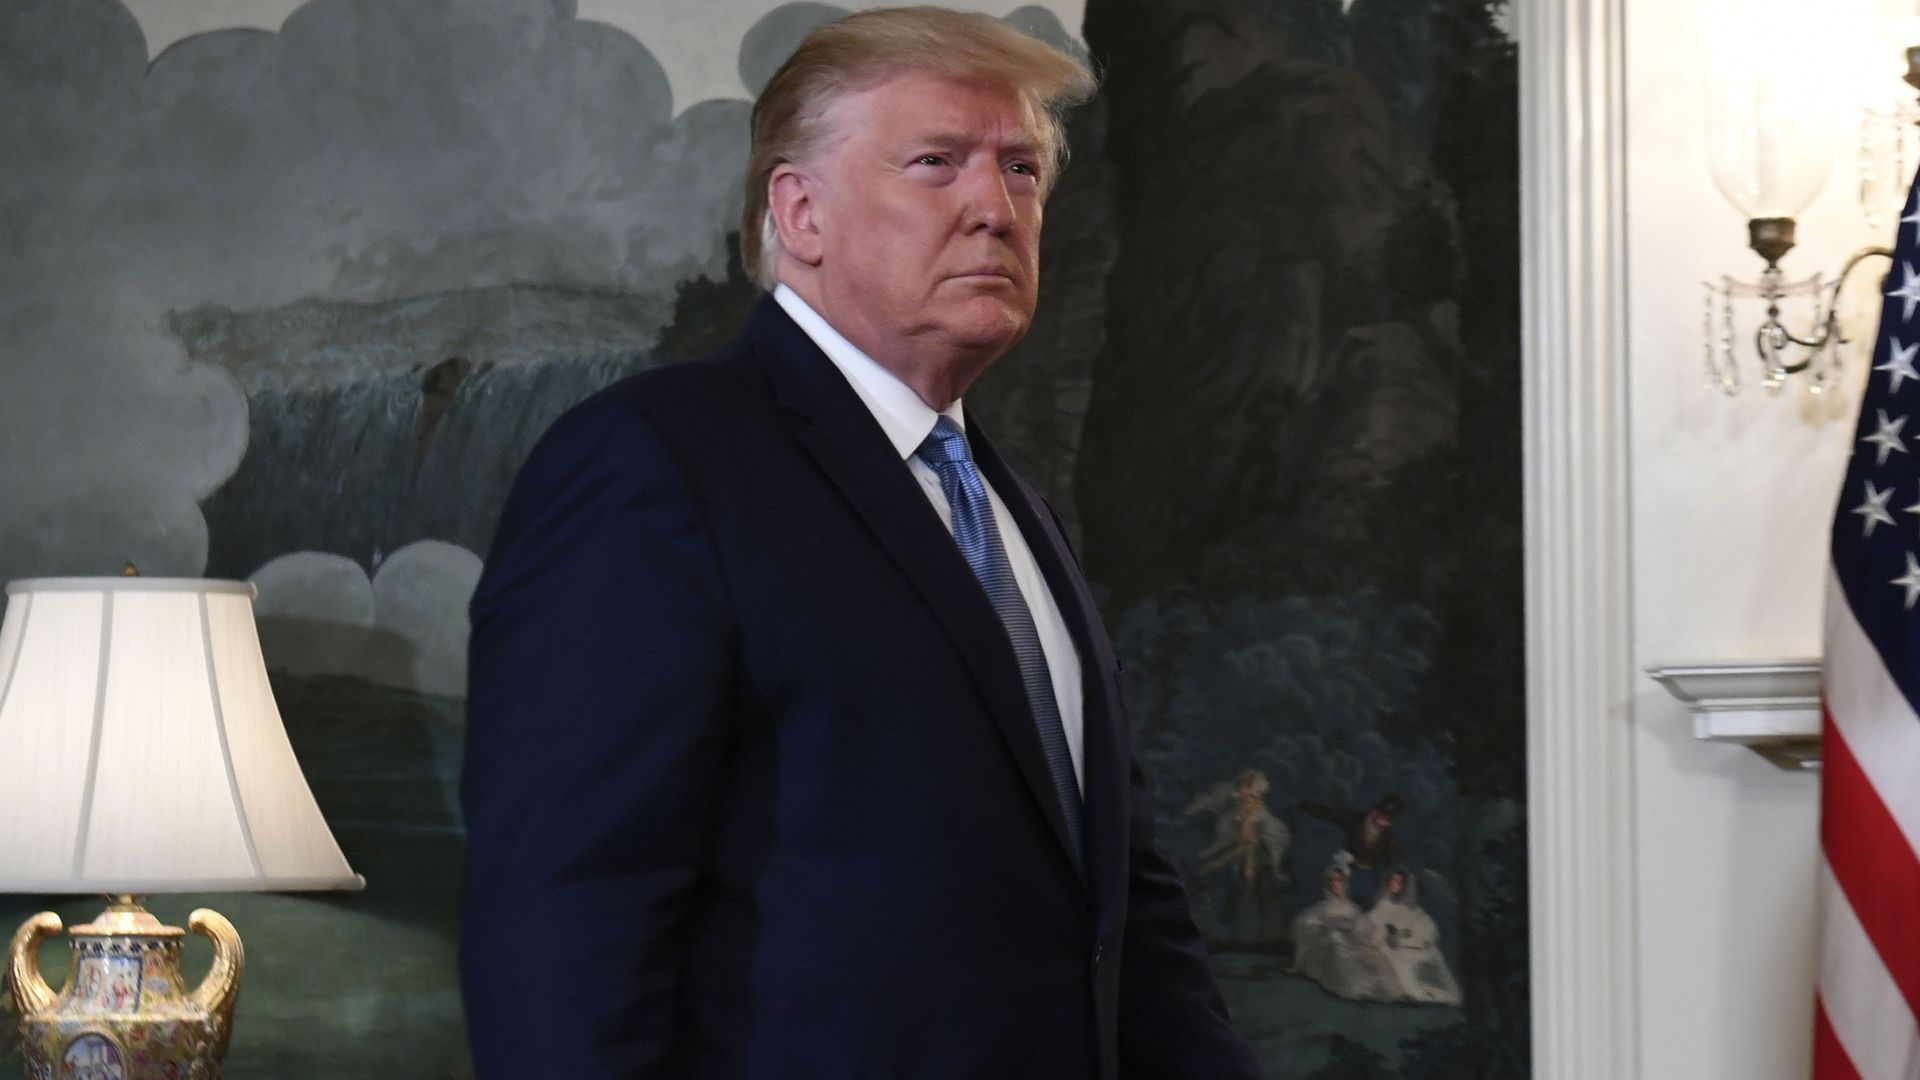 axios.com - Alexi McCammond - Exclusive: White House cyber memo warns of new network risks